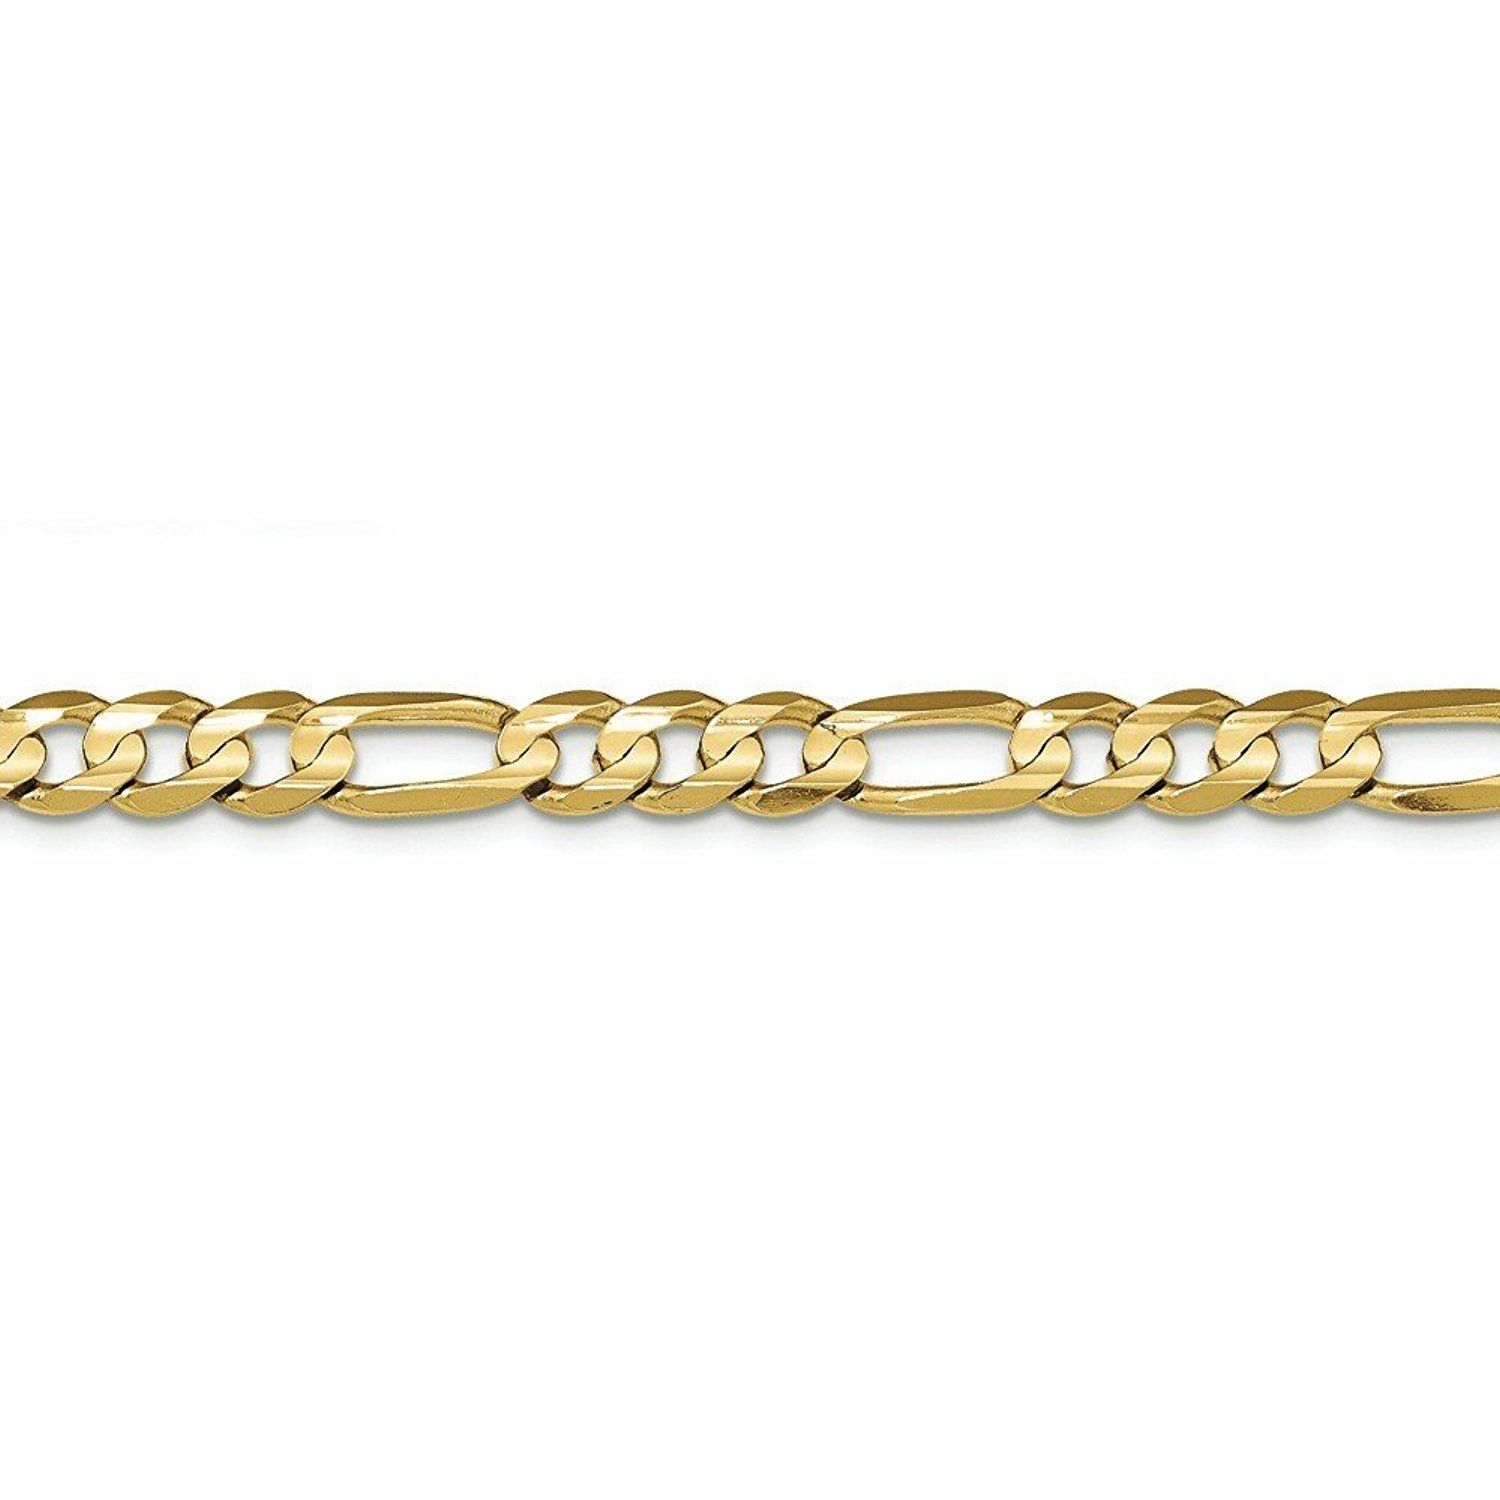 curb and watches jewelry bracelet find nuragold fine bracelets s chain cuban yellow gold products at solid women online brand anklet real